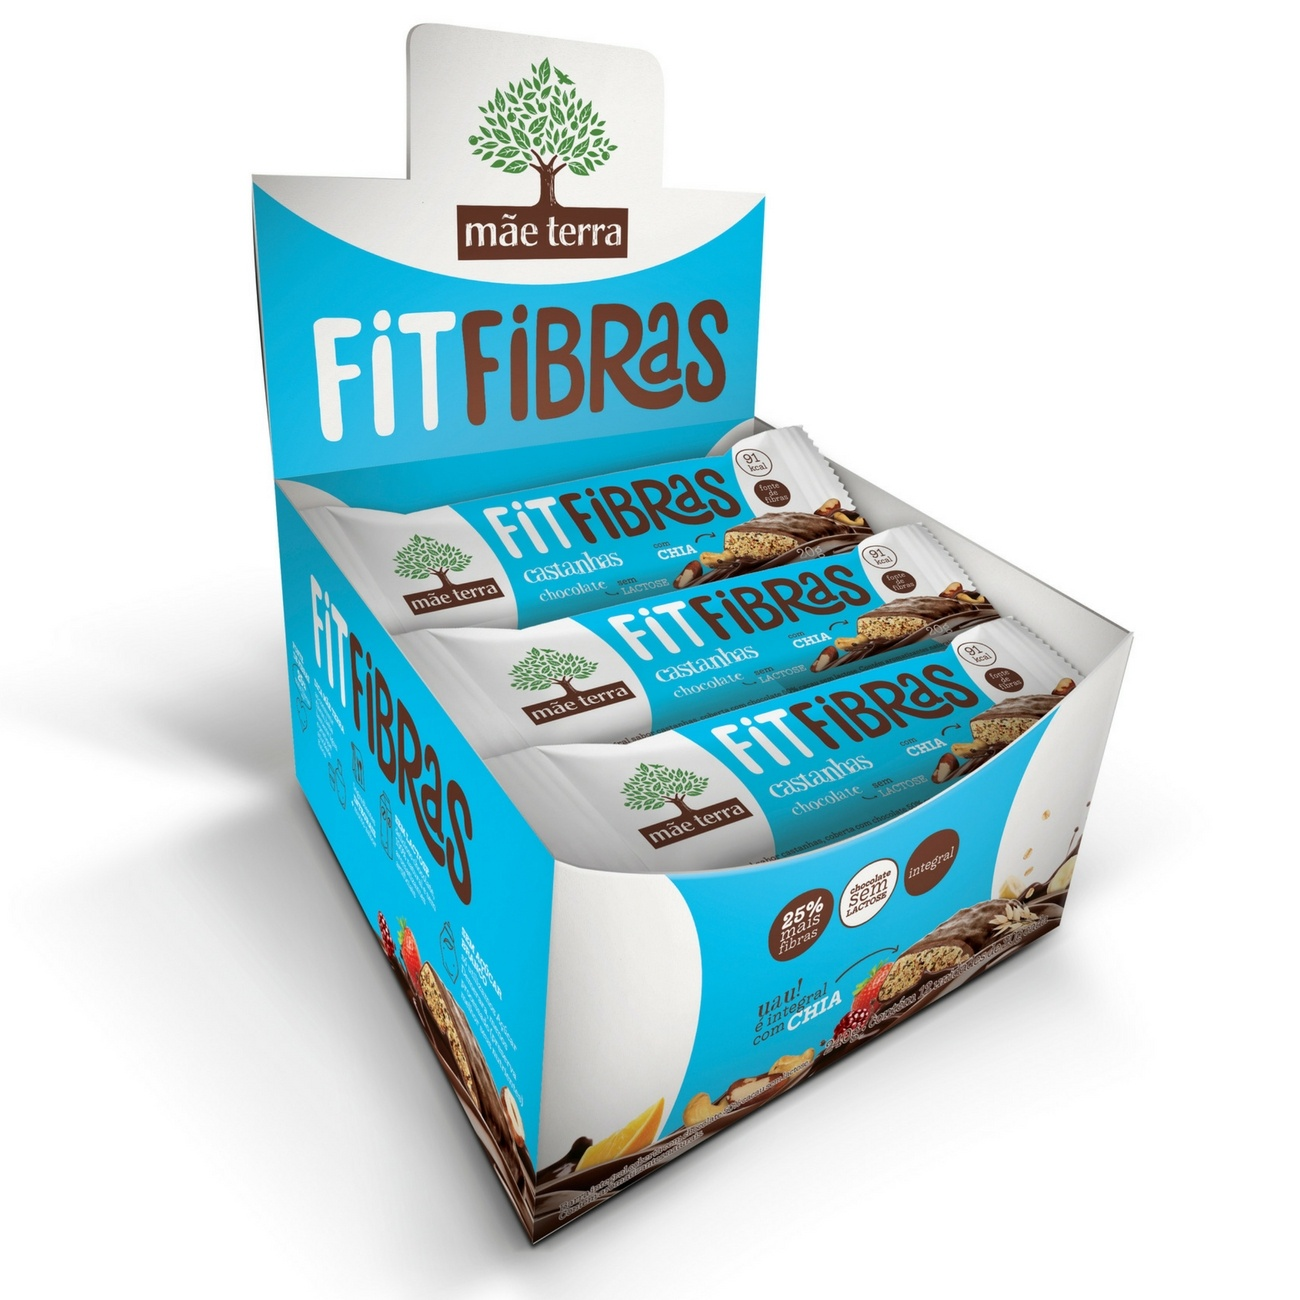 FitFibras Castanha 20g | Display